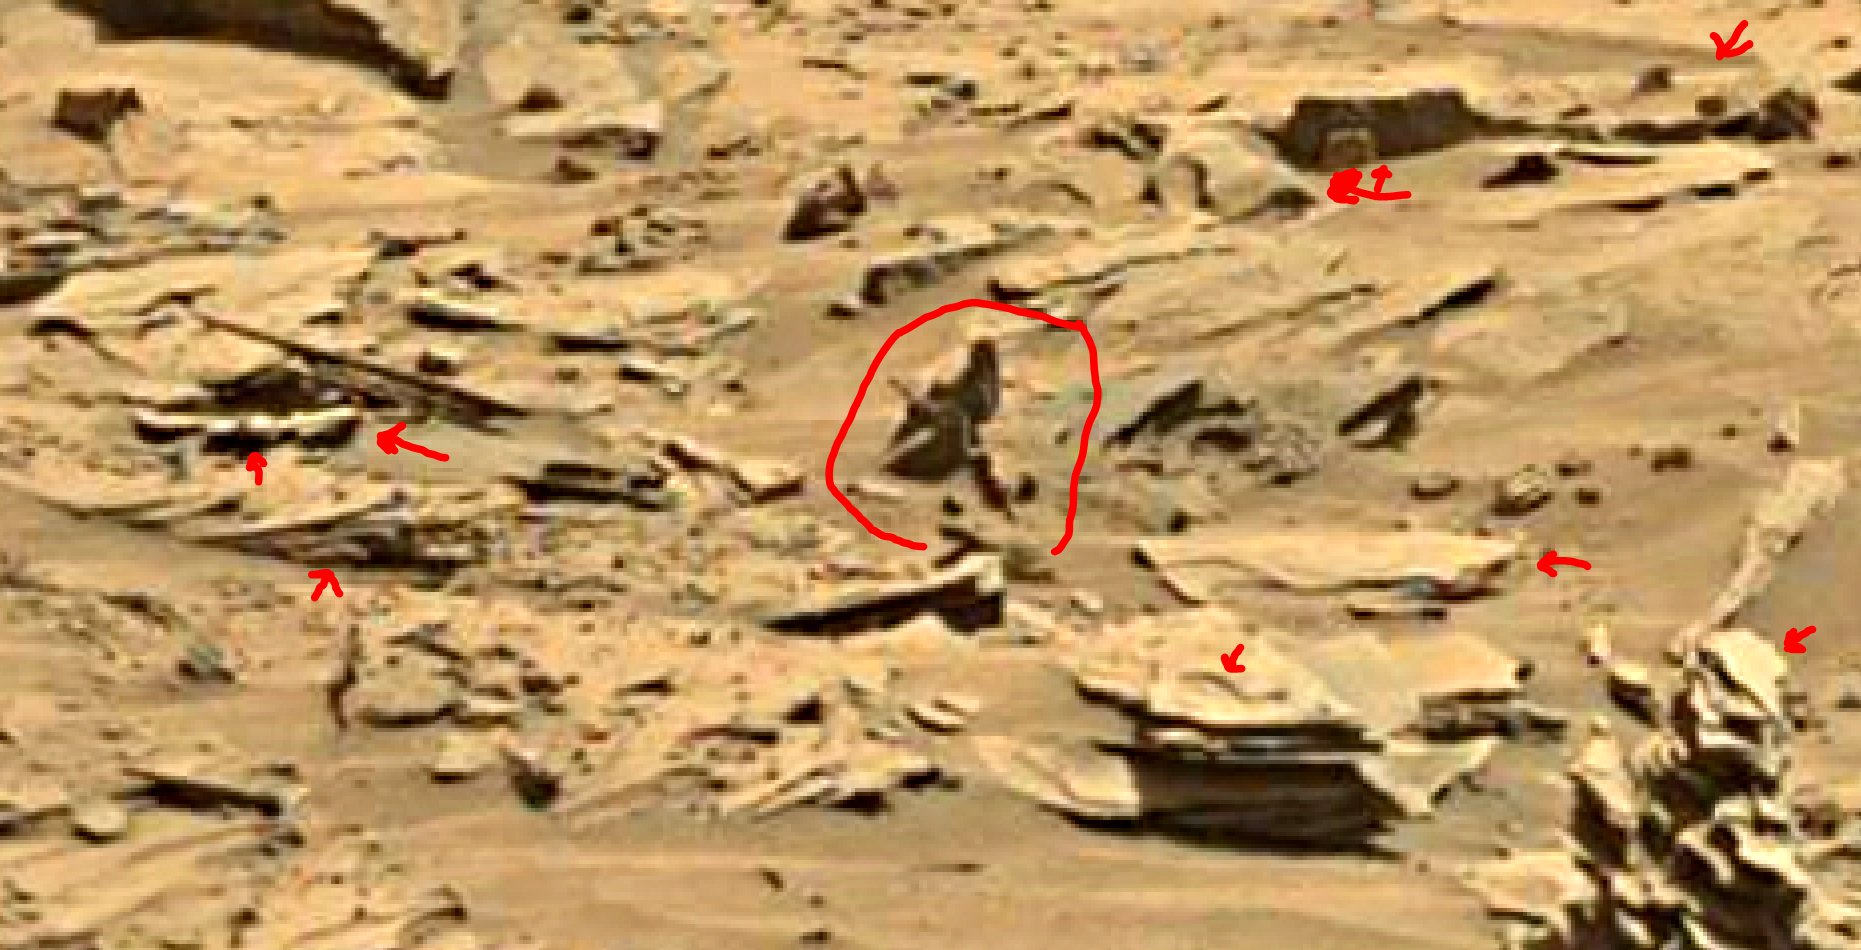 mars sol 1346 anomaly-artifacts 20a was life on mars